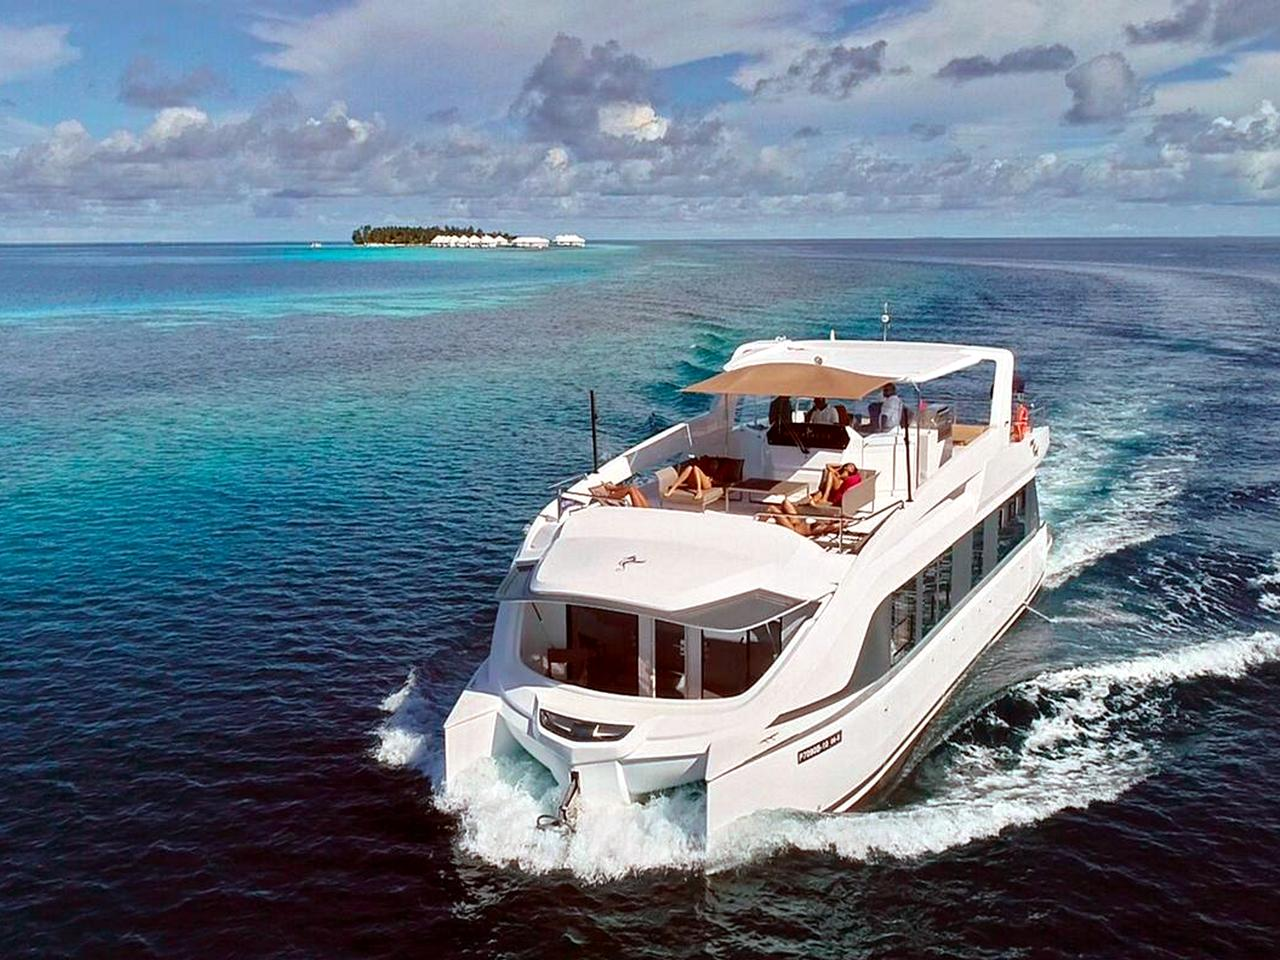 Over Reef, a 16.5 metre catamaran. Picture: Yacht Maldives